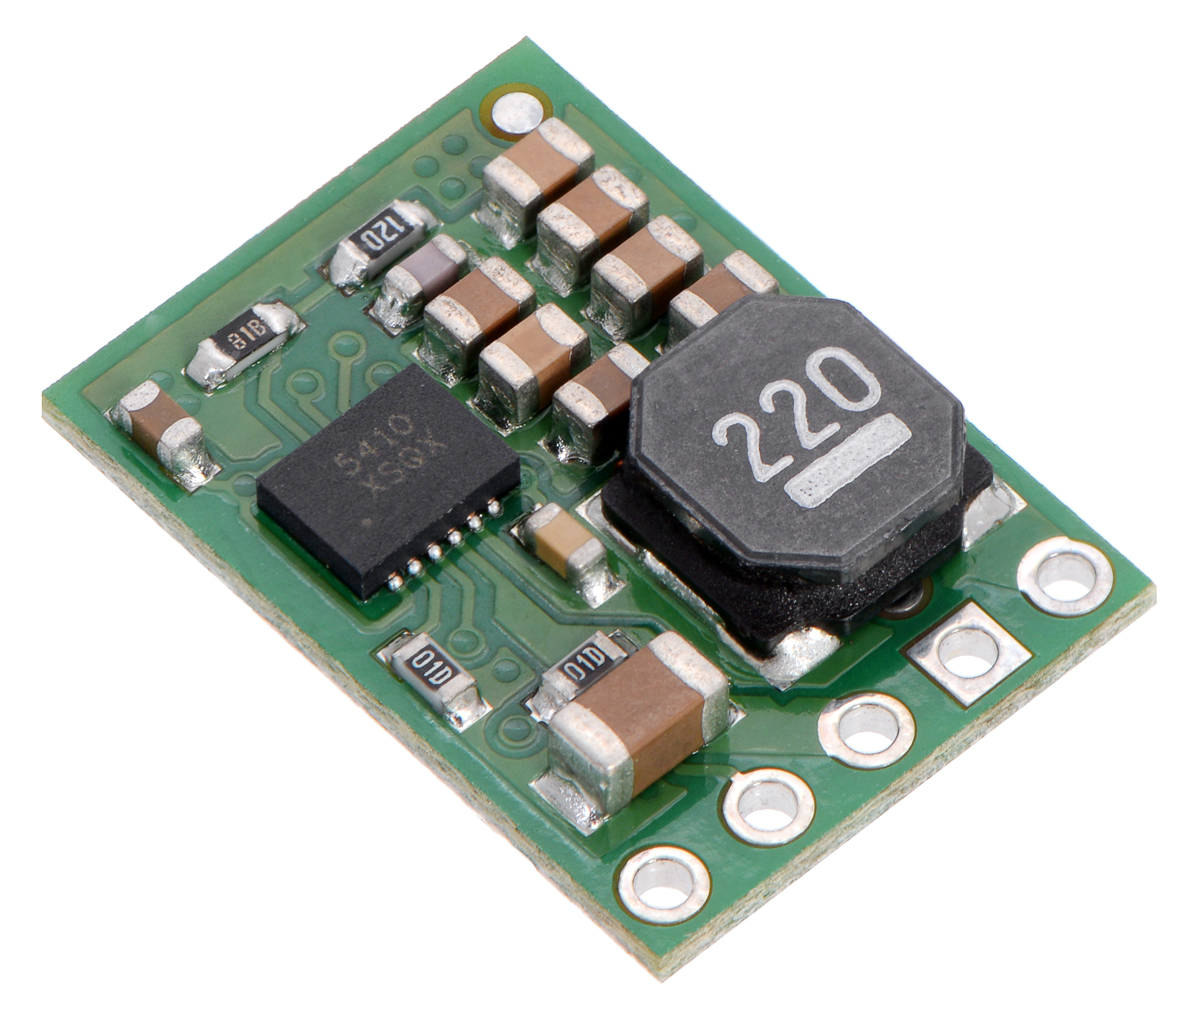 Pololu 3.3V, 1A Step-Down Voltage Regulator D24V10F3